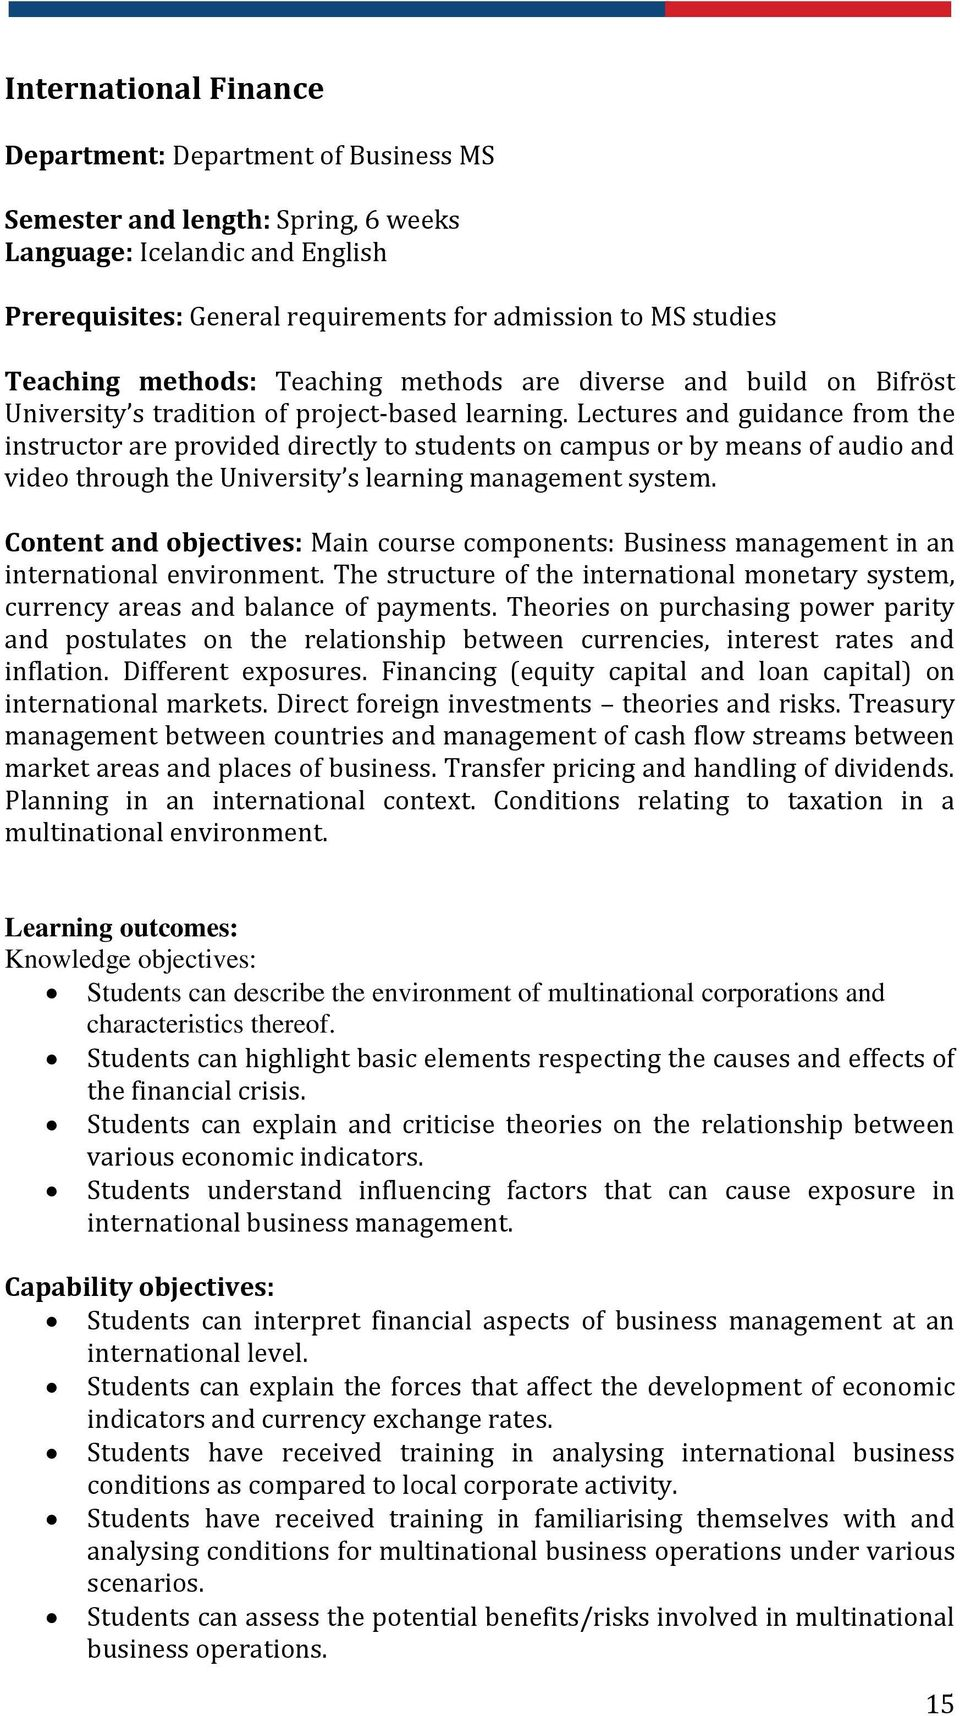 Content and objectives: Main course components: Business management in an international environment. The structure of the international monetary system, currency areas and balance of payments.